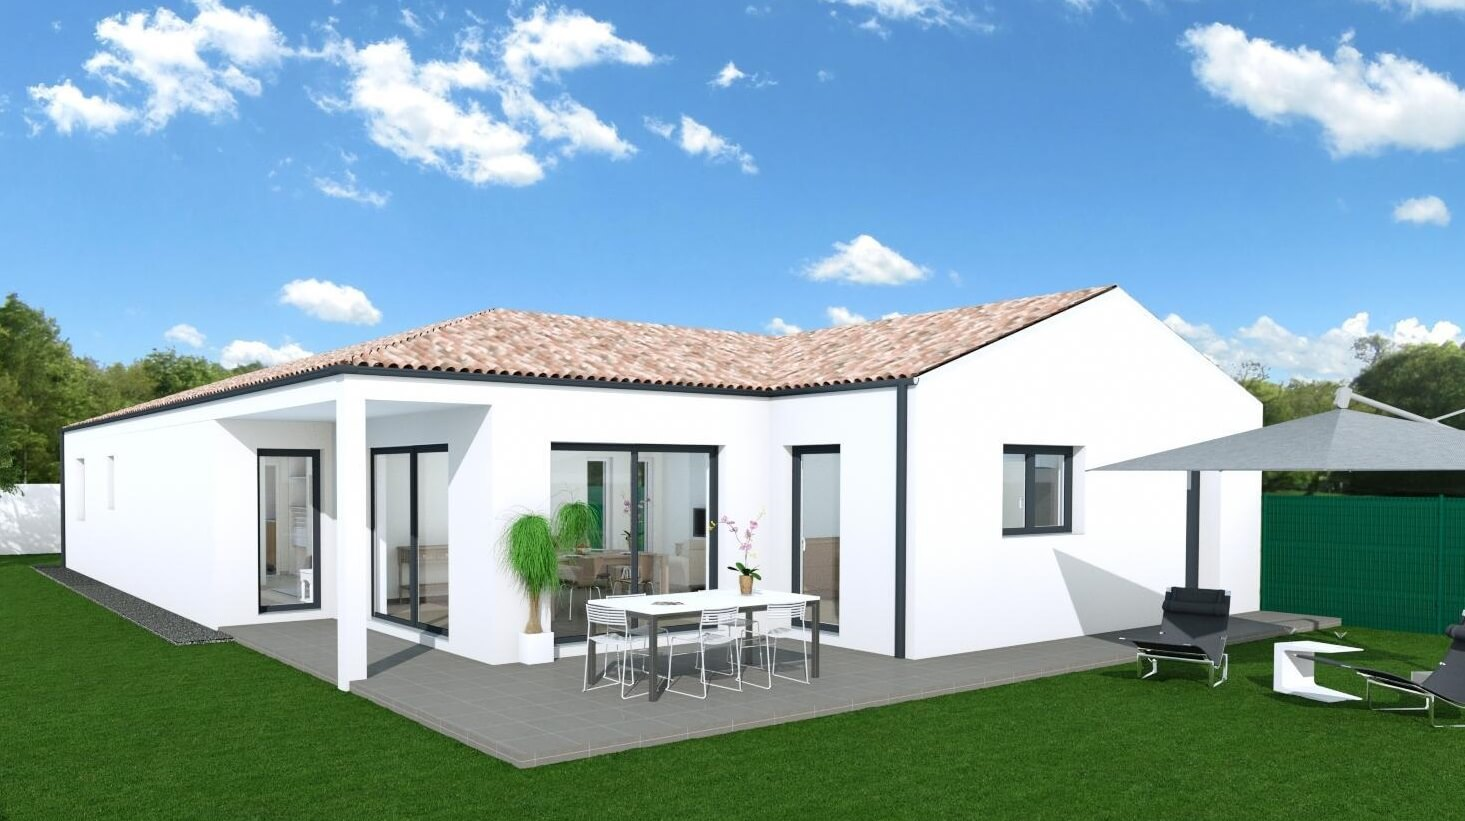 Niort les maisons chantal b for Maisons chantal b